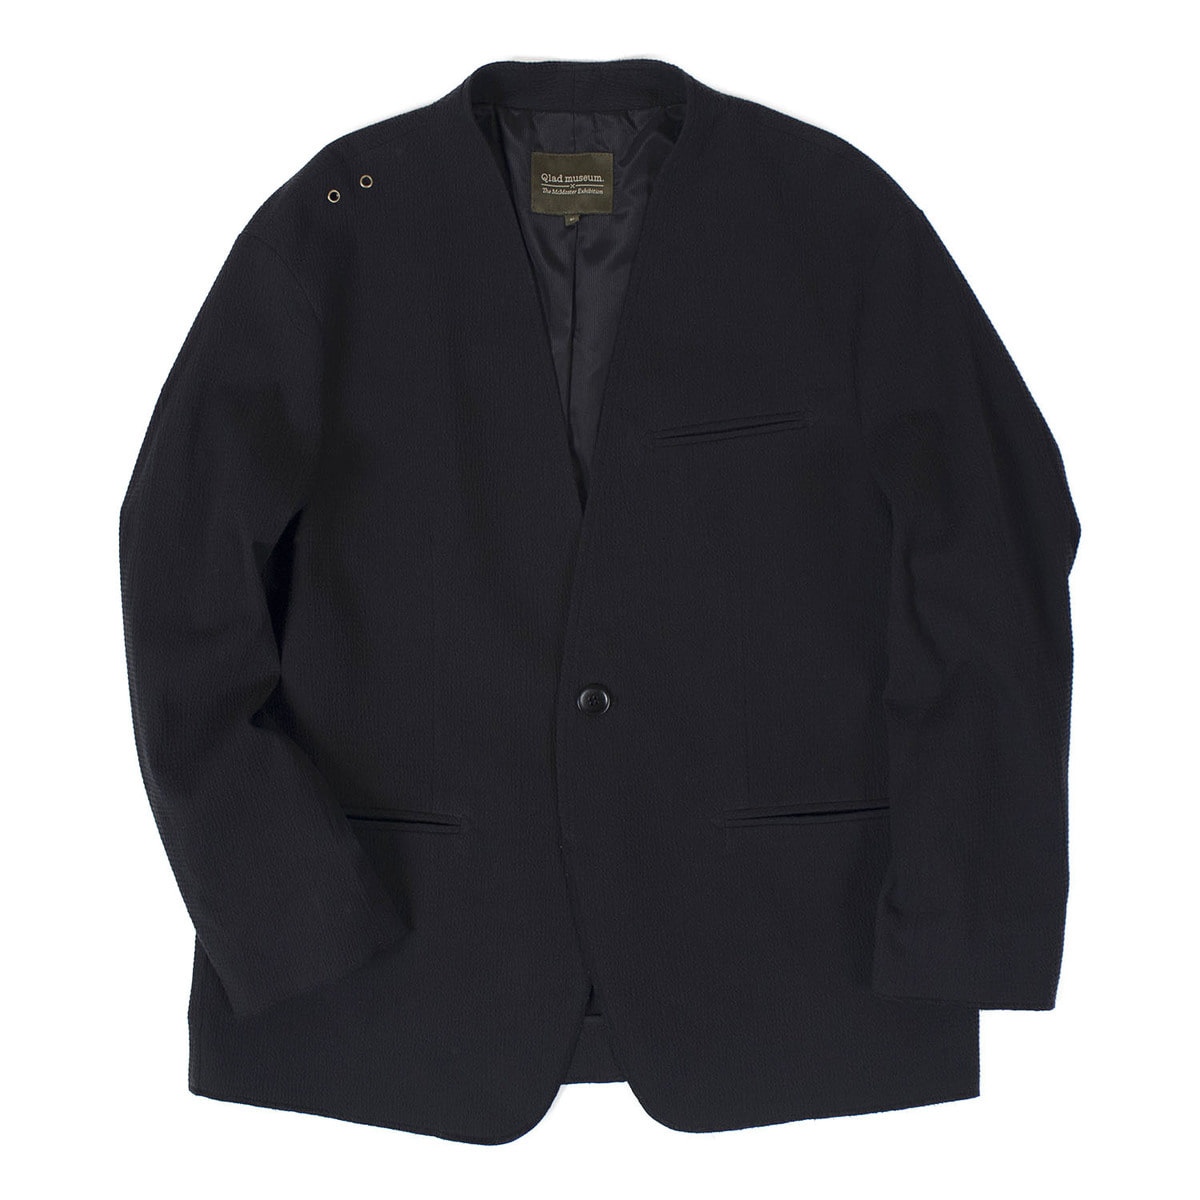 Inno Seersucker Single Jacket (Black)